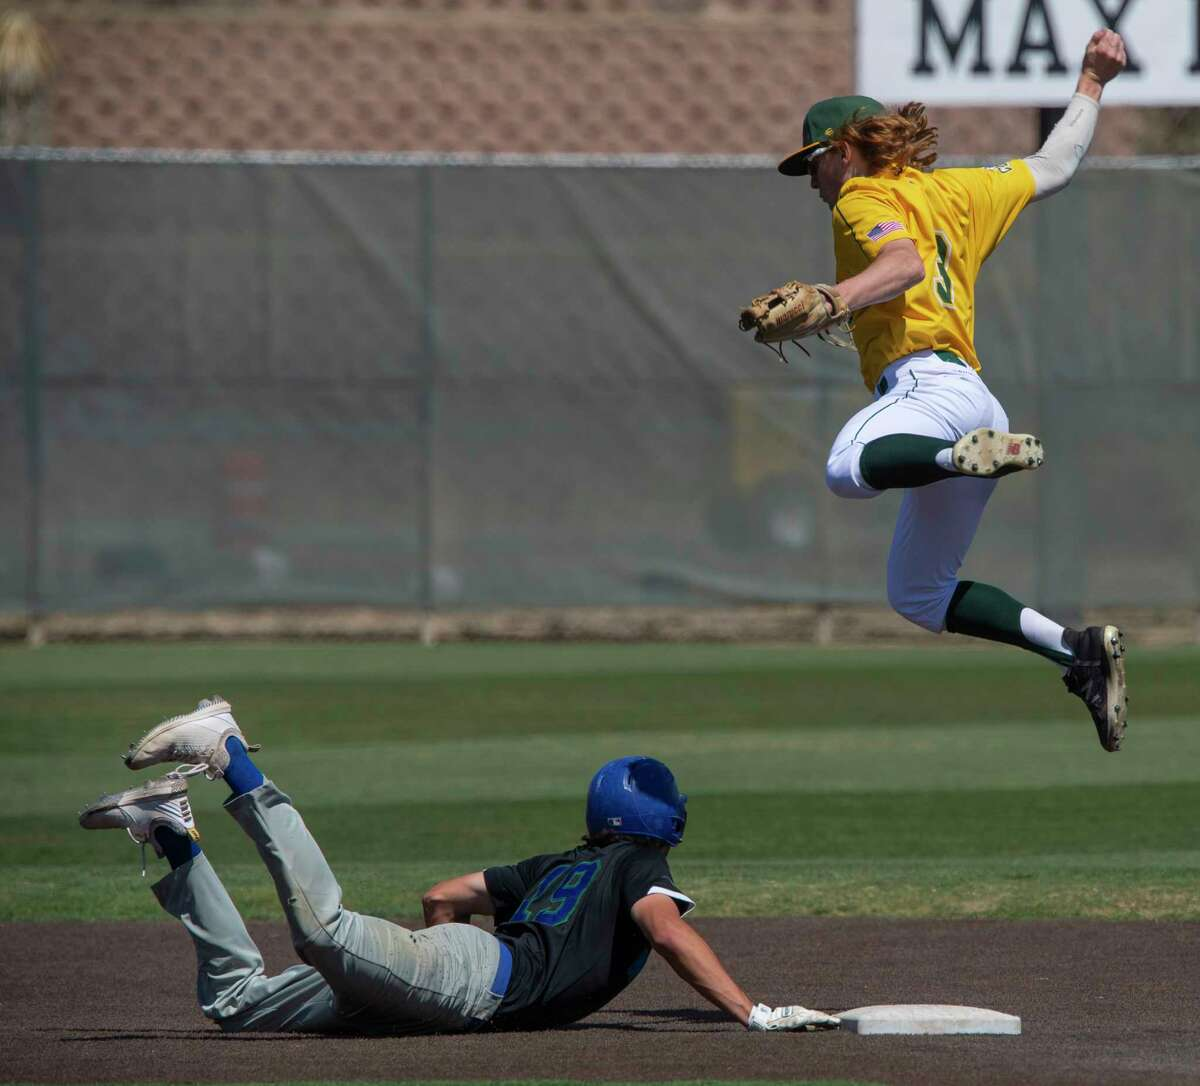 Midland College's Garrett Williams leaps for the throw on a pick-off attempt as Western Texas College's Carson Garza safely dives back to second 03/26/21 at Christensen Stadium. Tim Fischer/Reporter-Telegram